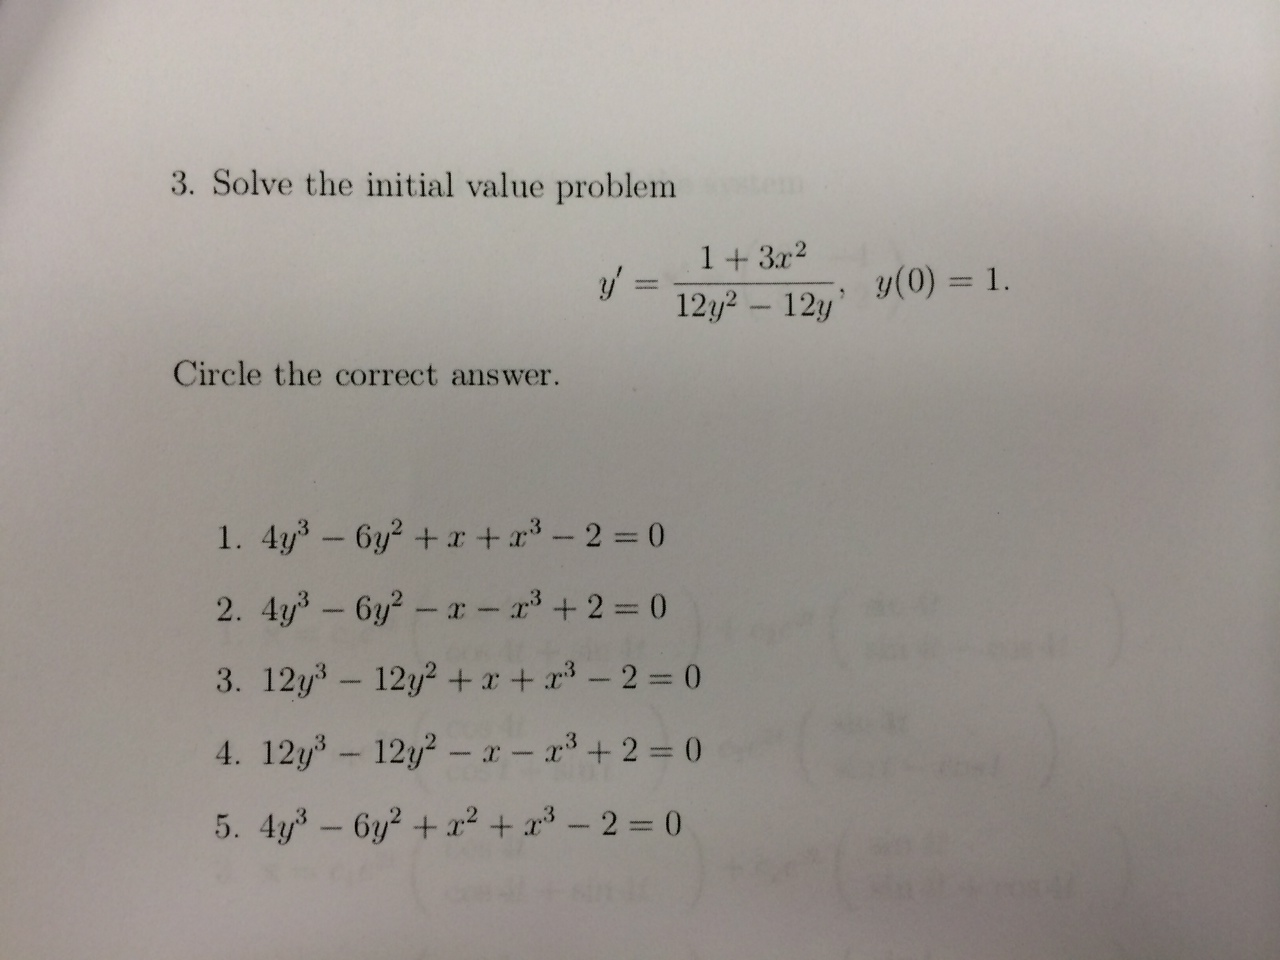 Net present value and correct answer